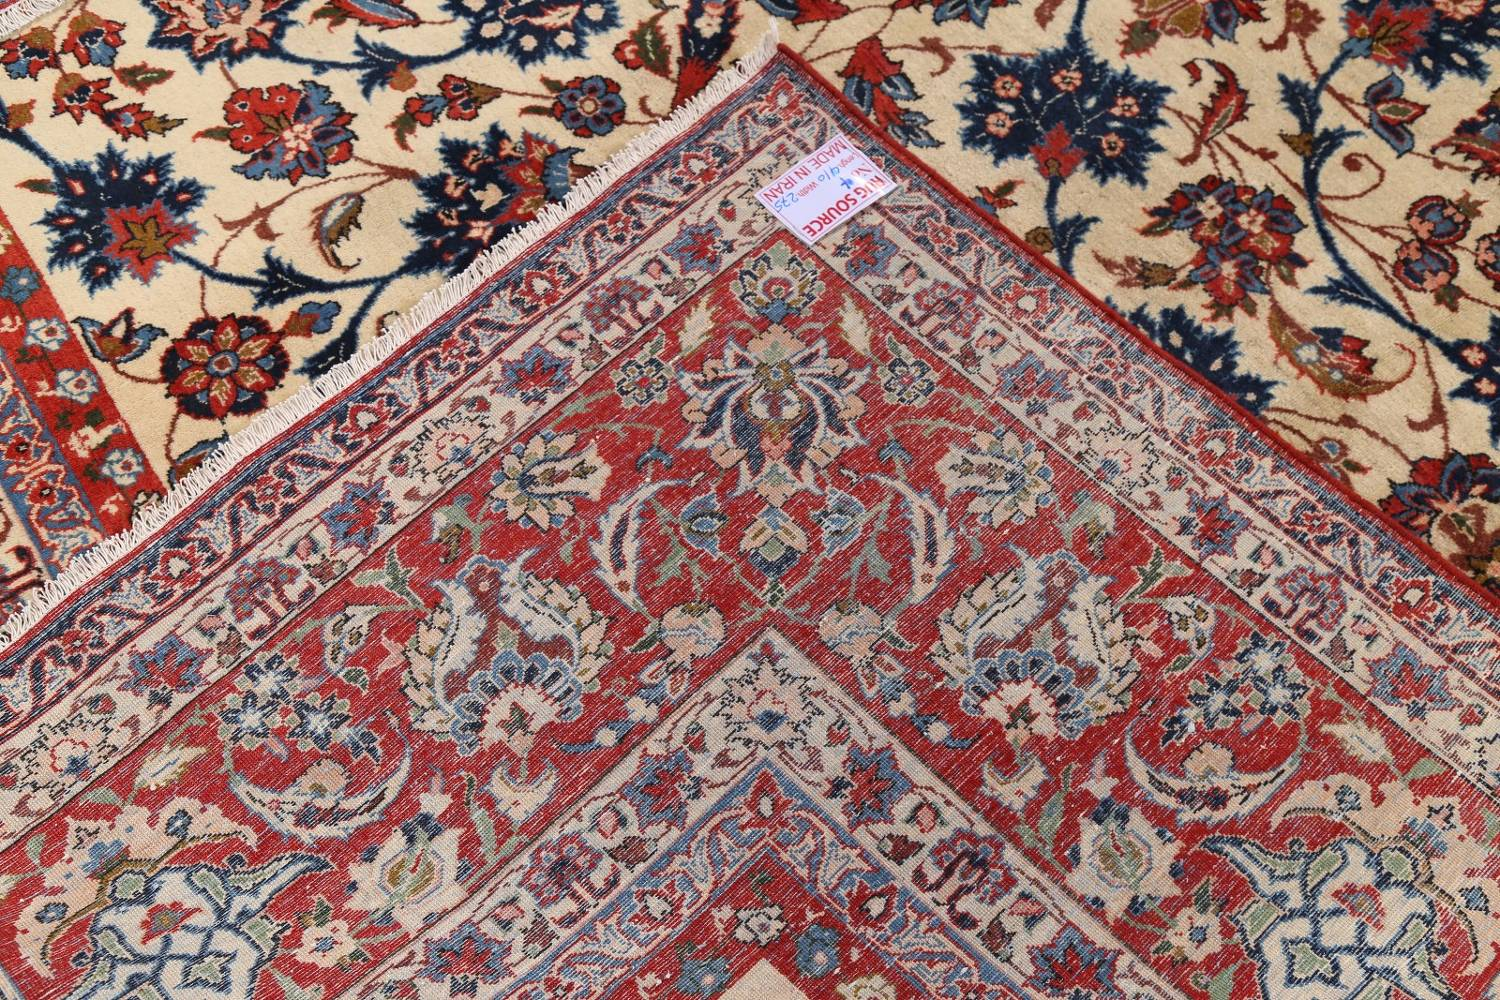 Floral 9x13 Isfahan Persian Area Rug image 24